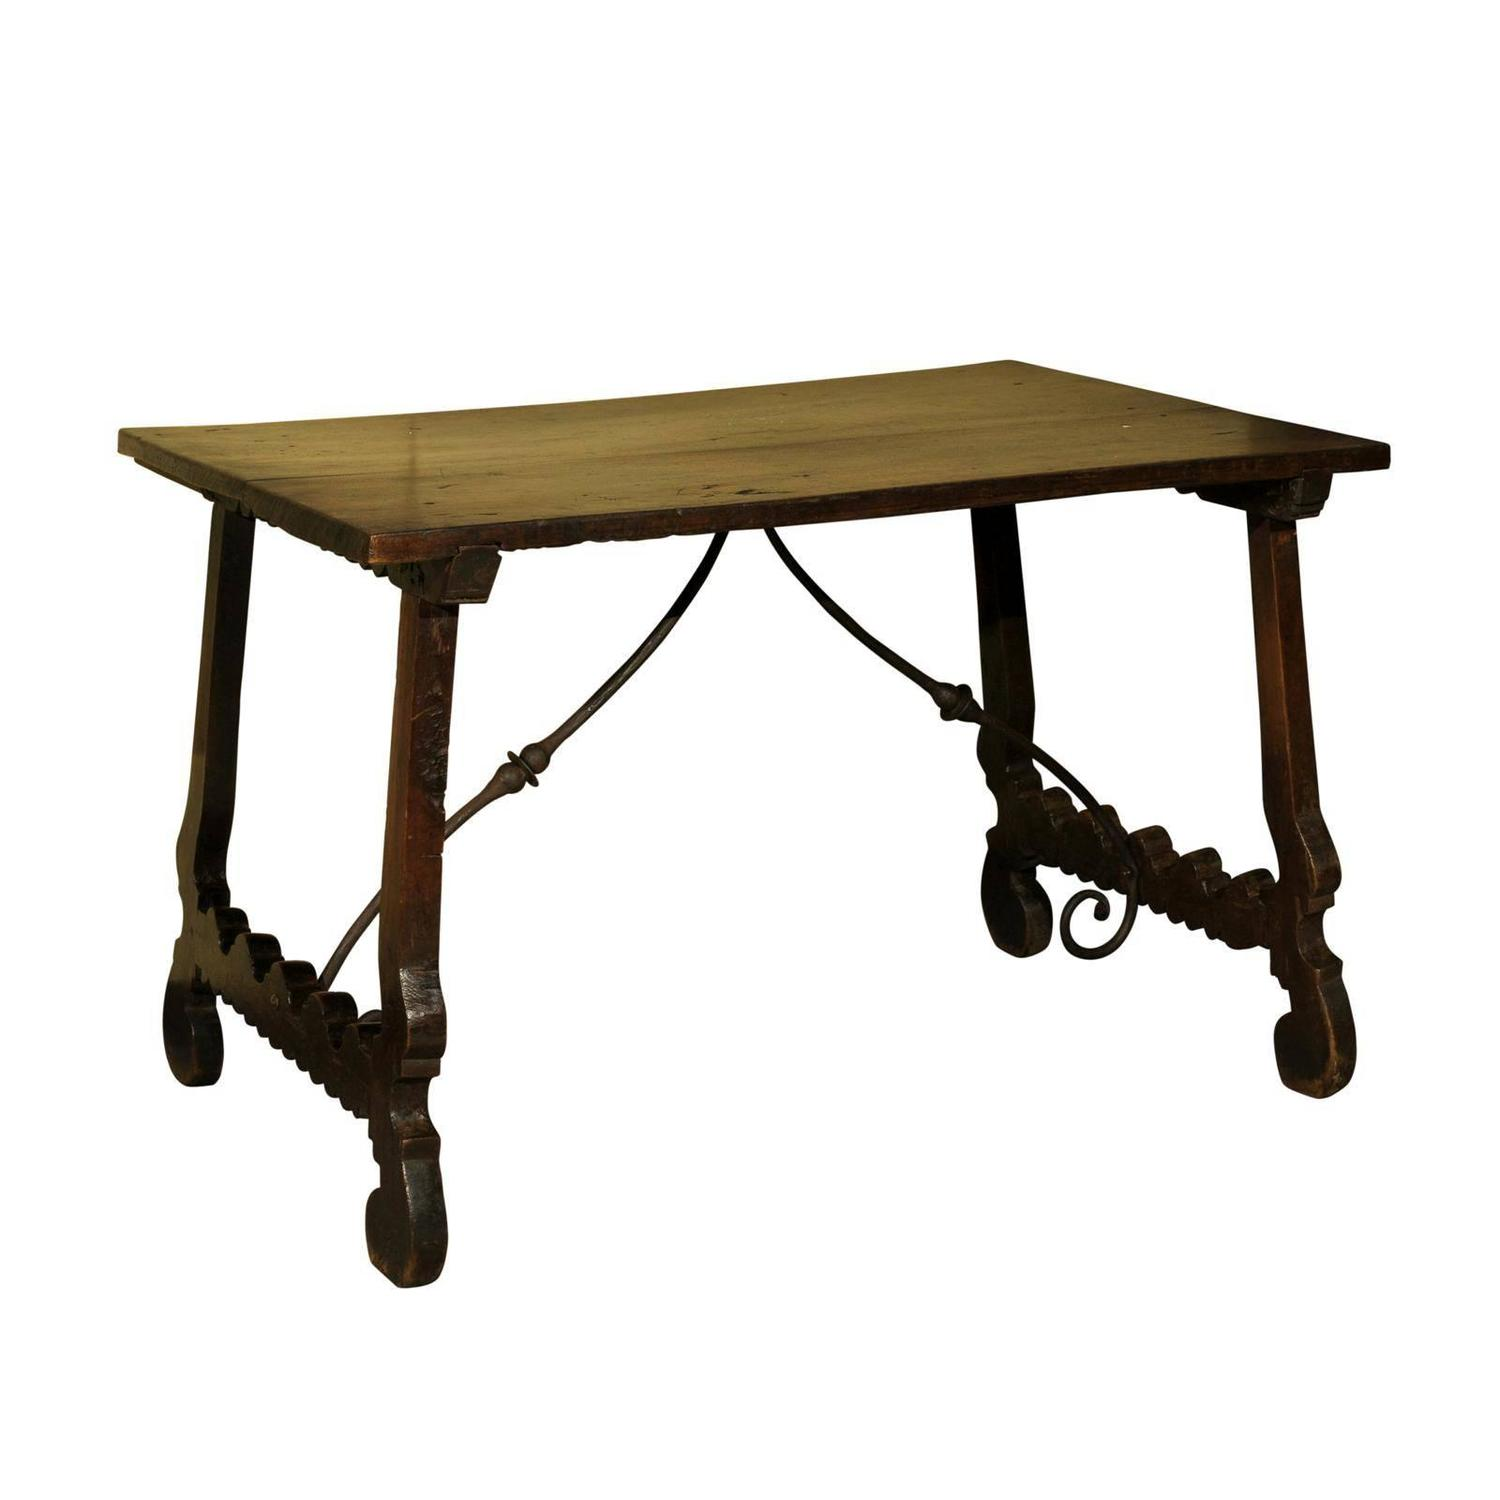 18th Century Spanish Table in Dark Brown Oak with Iron Stretcher